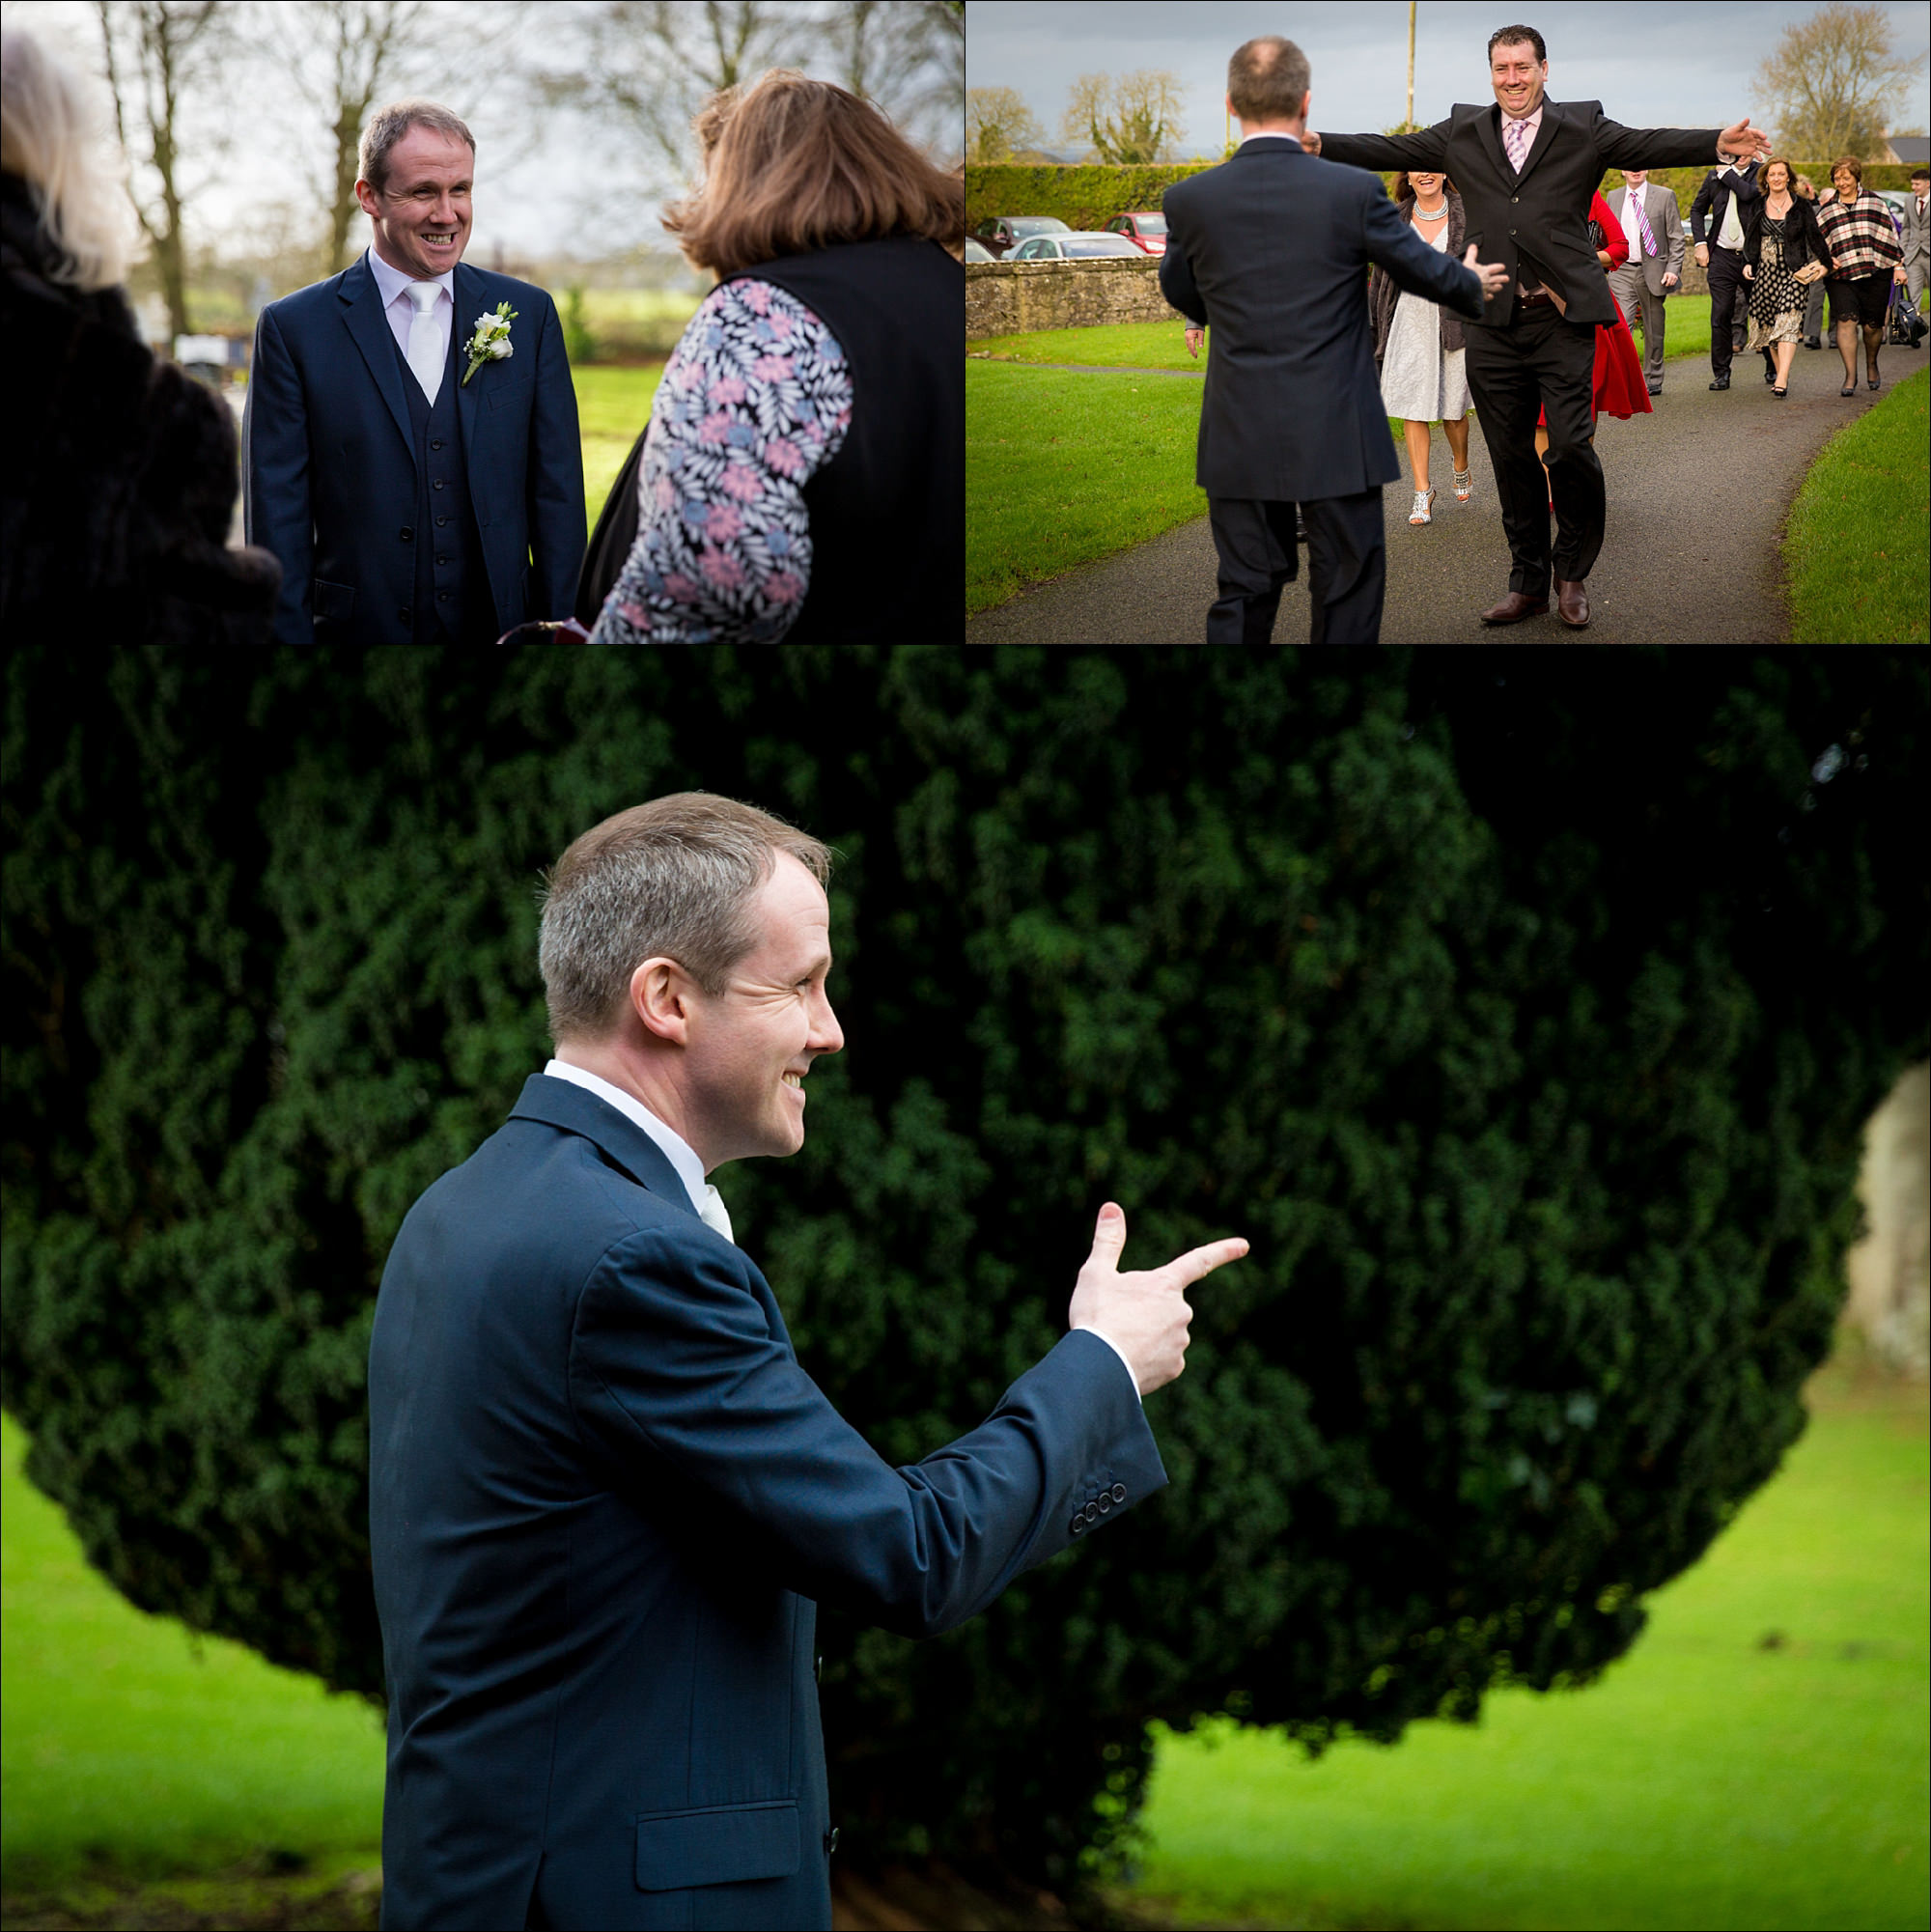 dublin wedding photographer david duignan photography tankardstown weddings slane rathfeigh church ireland 0013